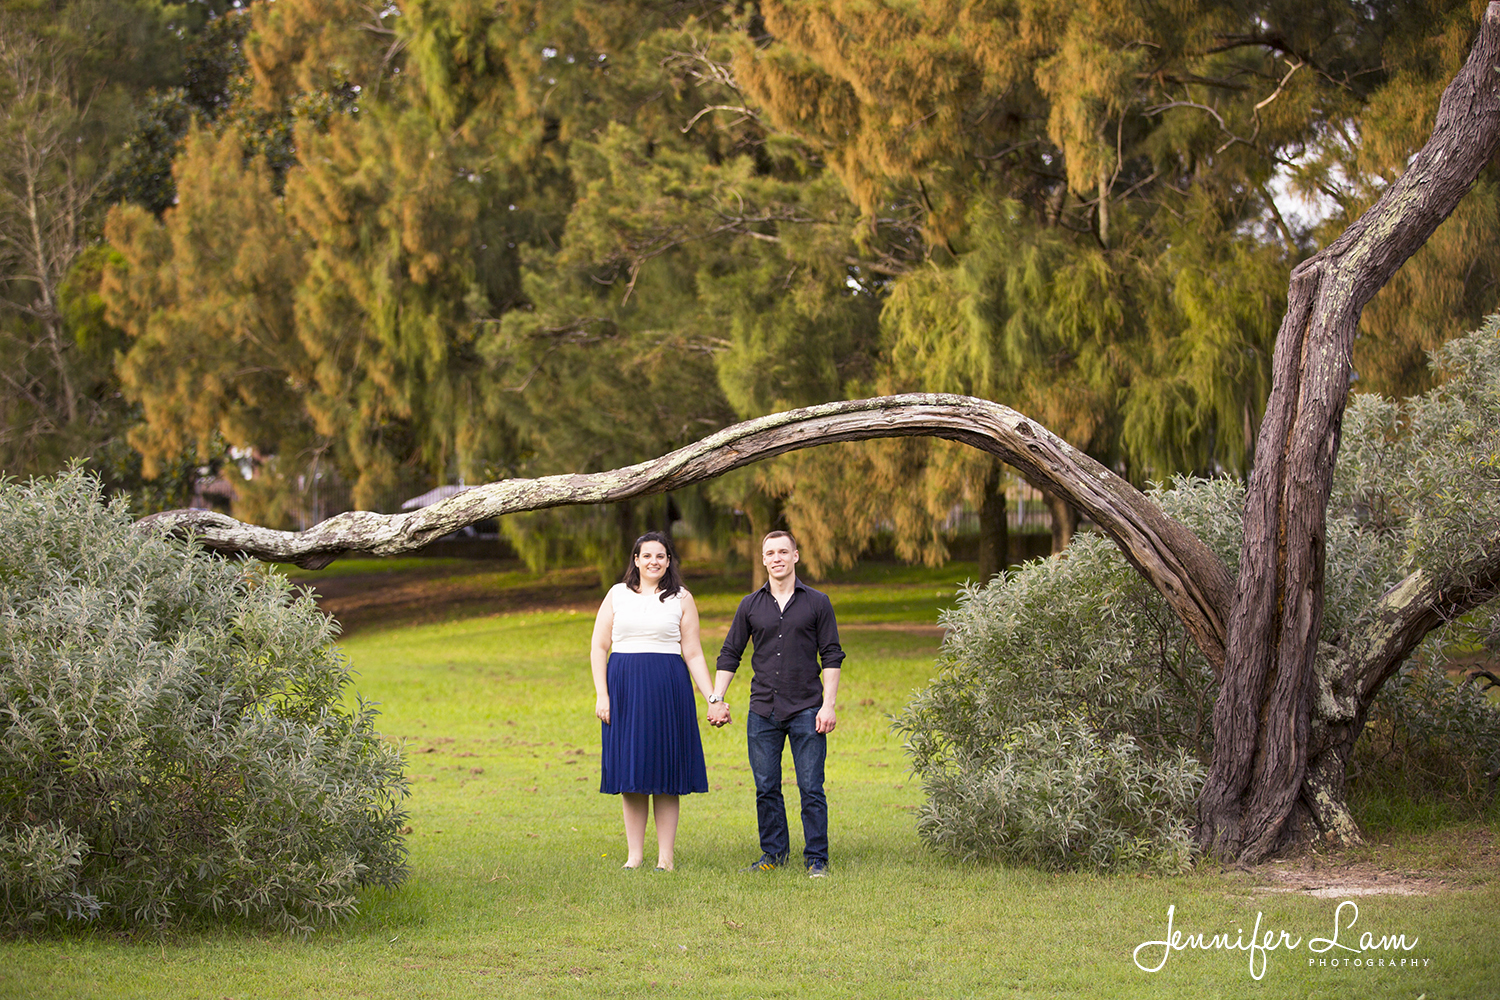 Engagement Session - Sydney Wedding Photographer - Jennifer Lam Photography (4).jpg